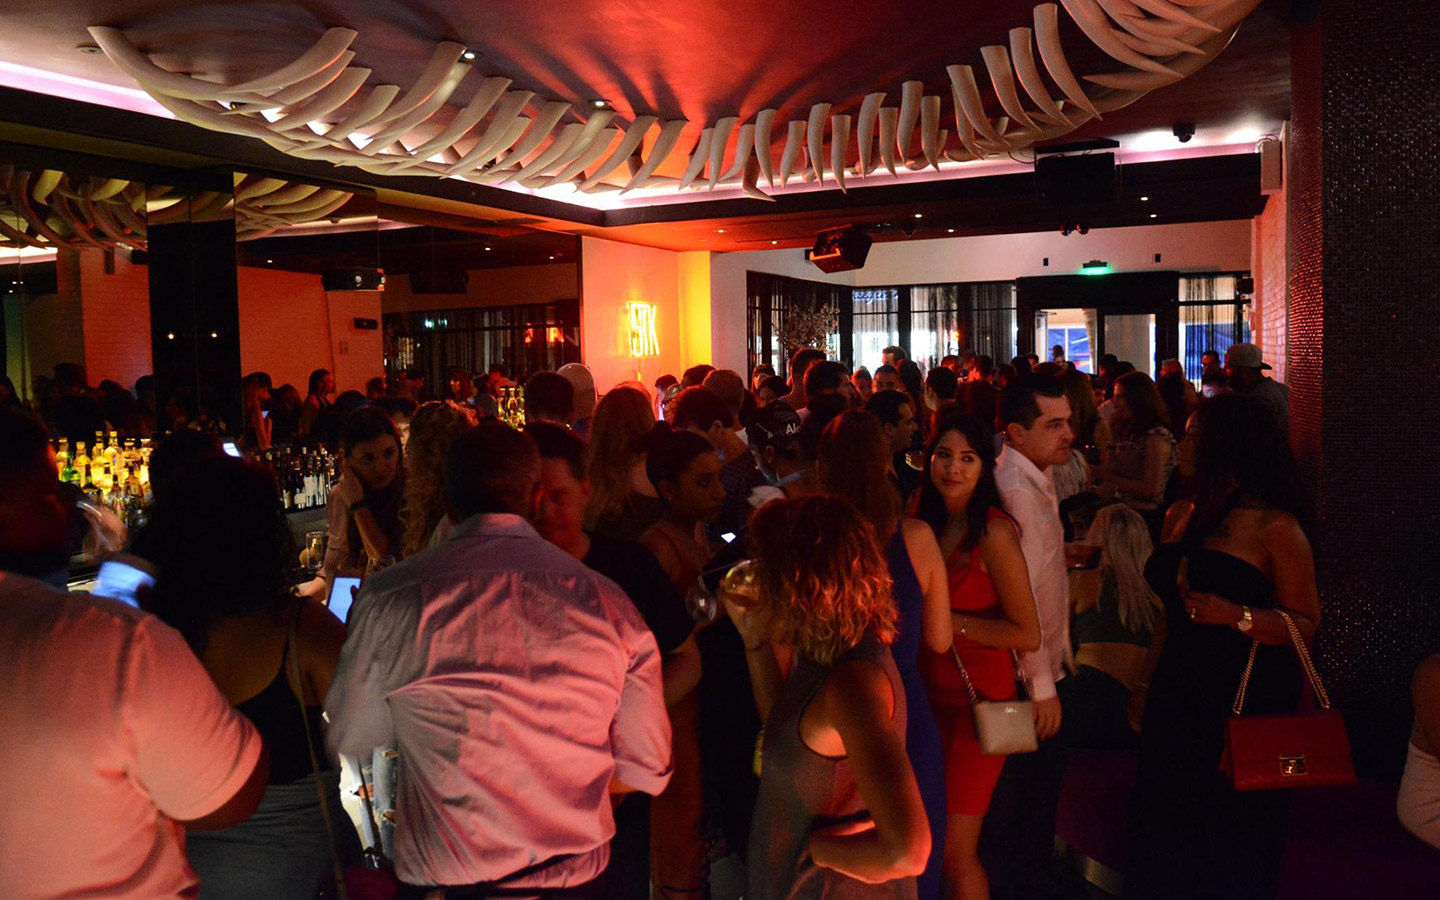 STK Miami Beach crowd